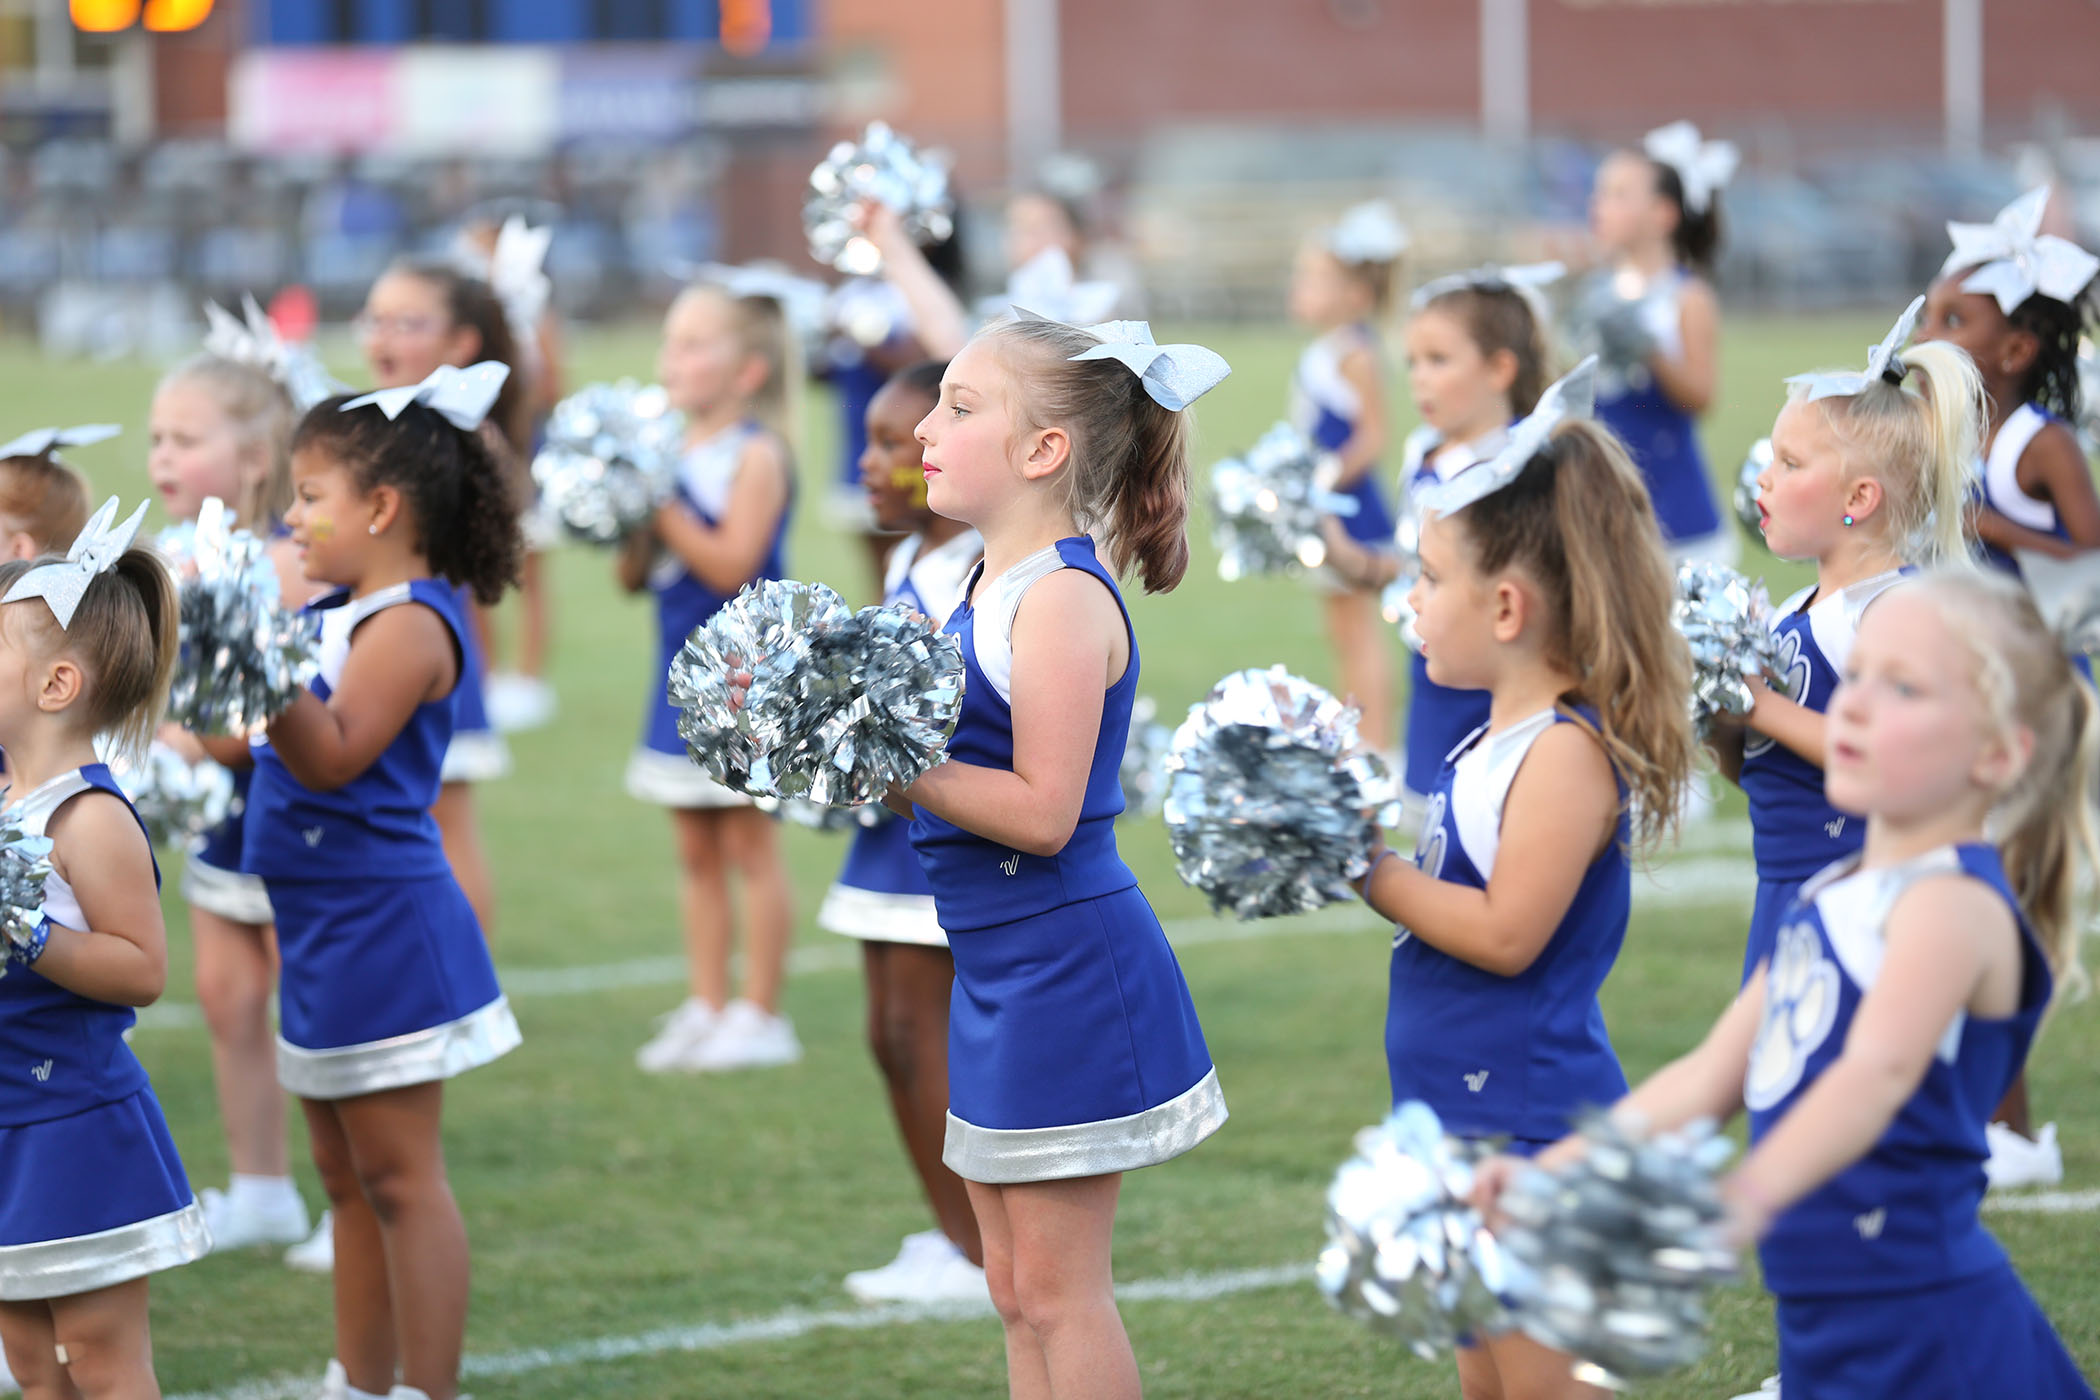 QLE Kittens perform at a football game.